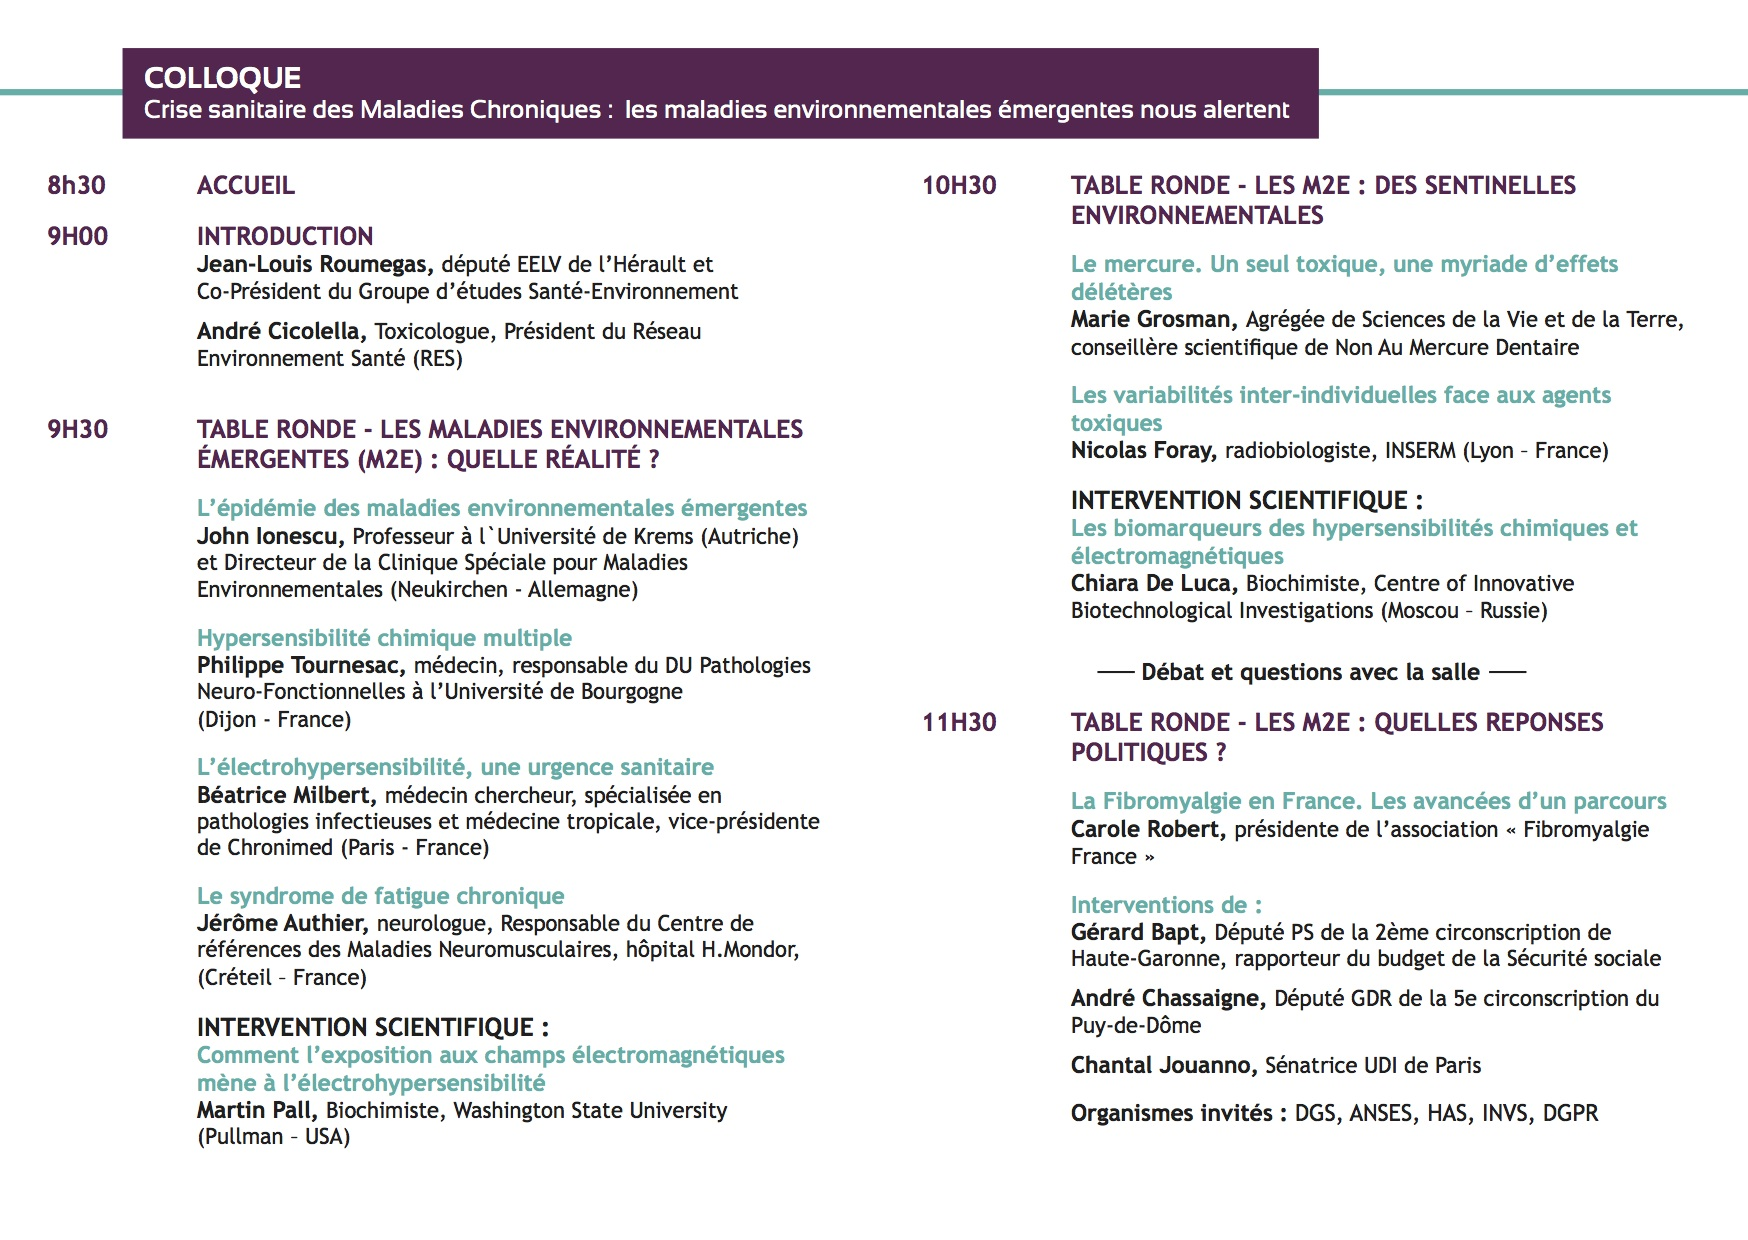 Programme Colloque oct 2014 AM2E 2